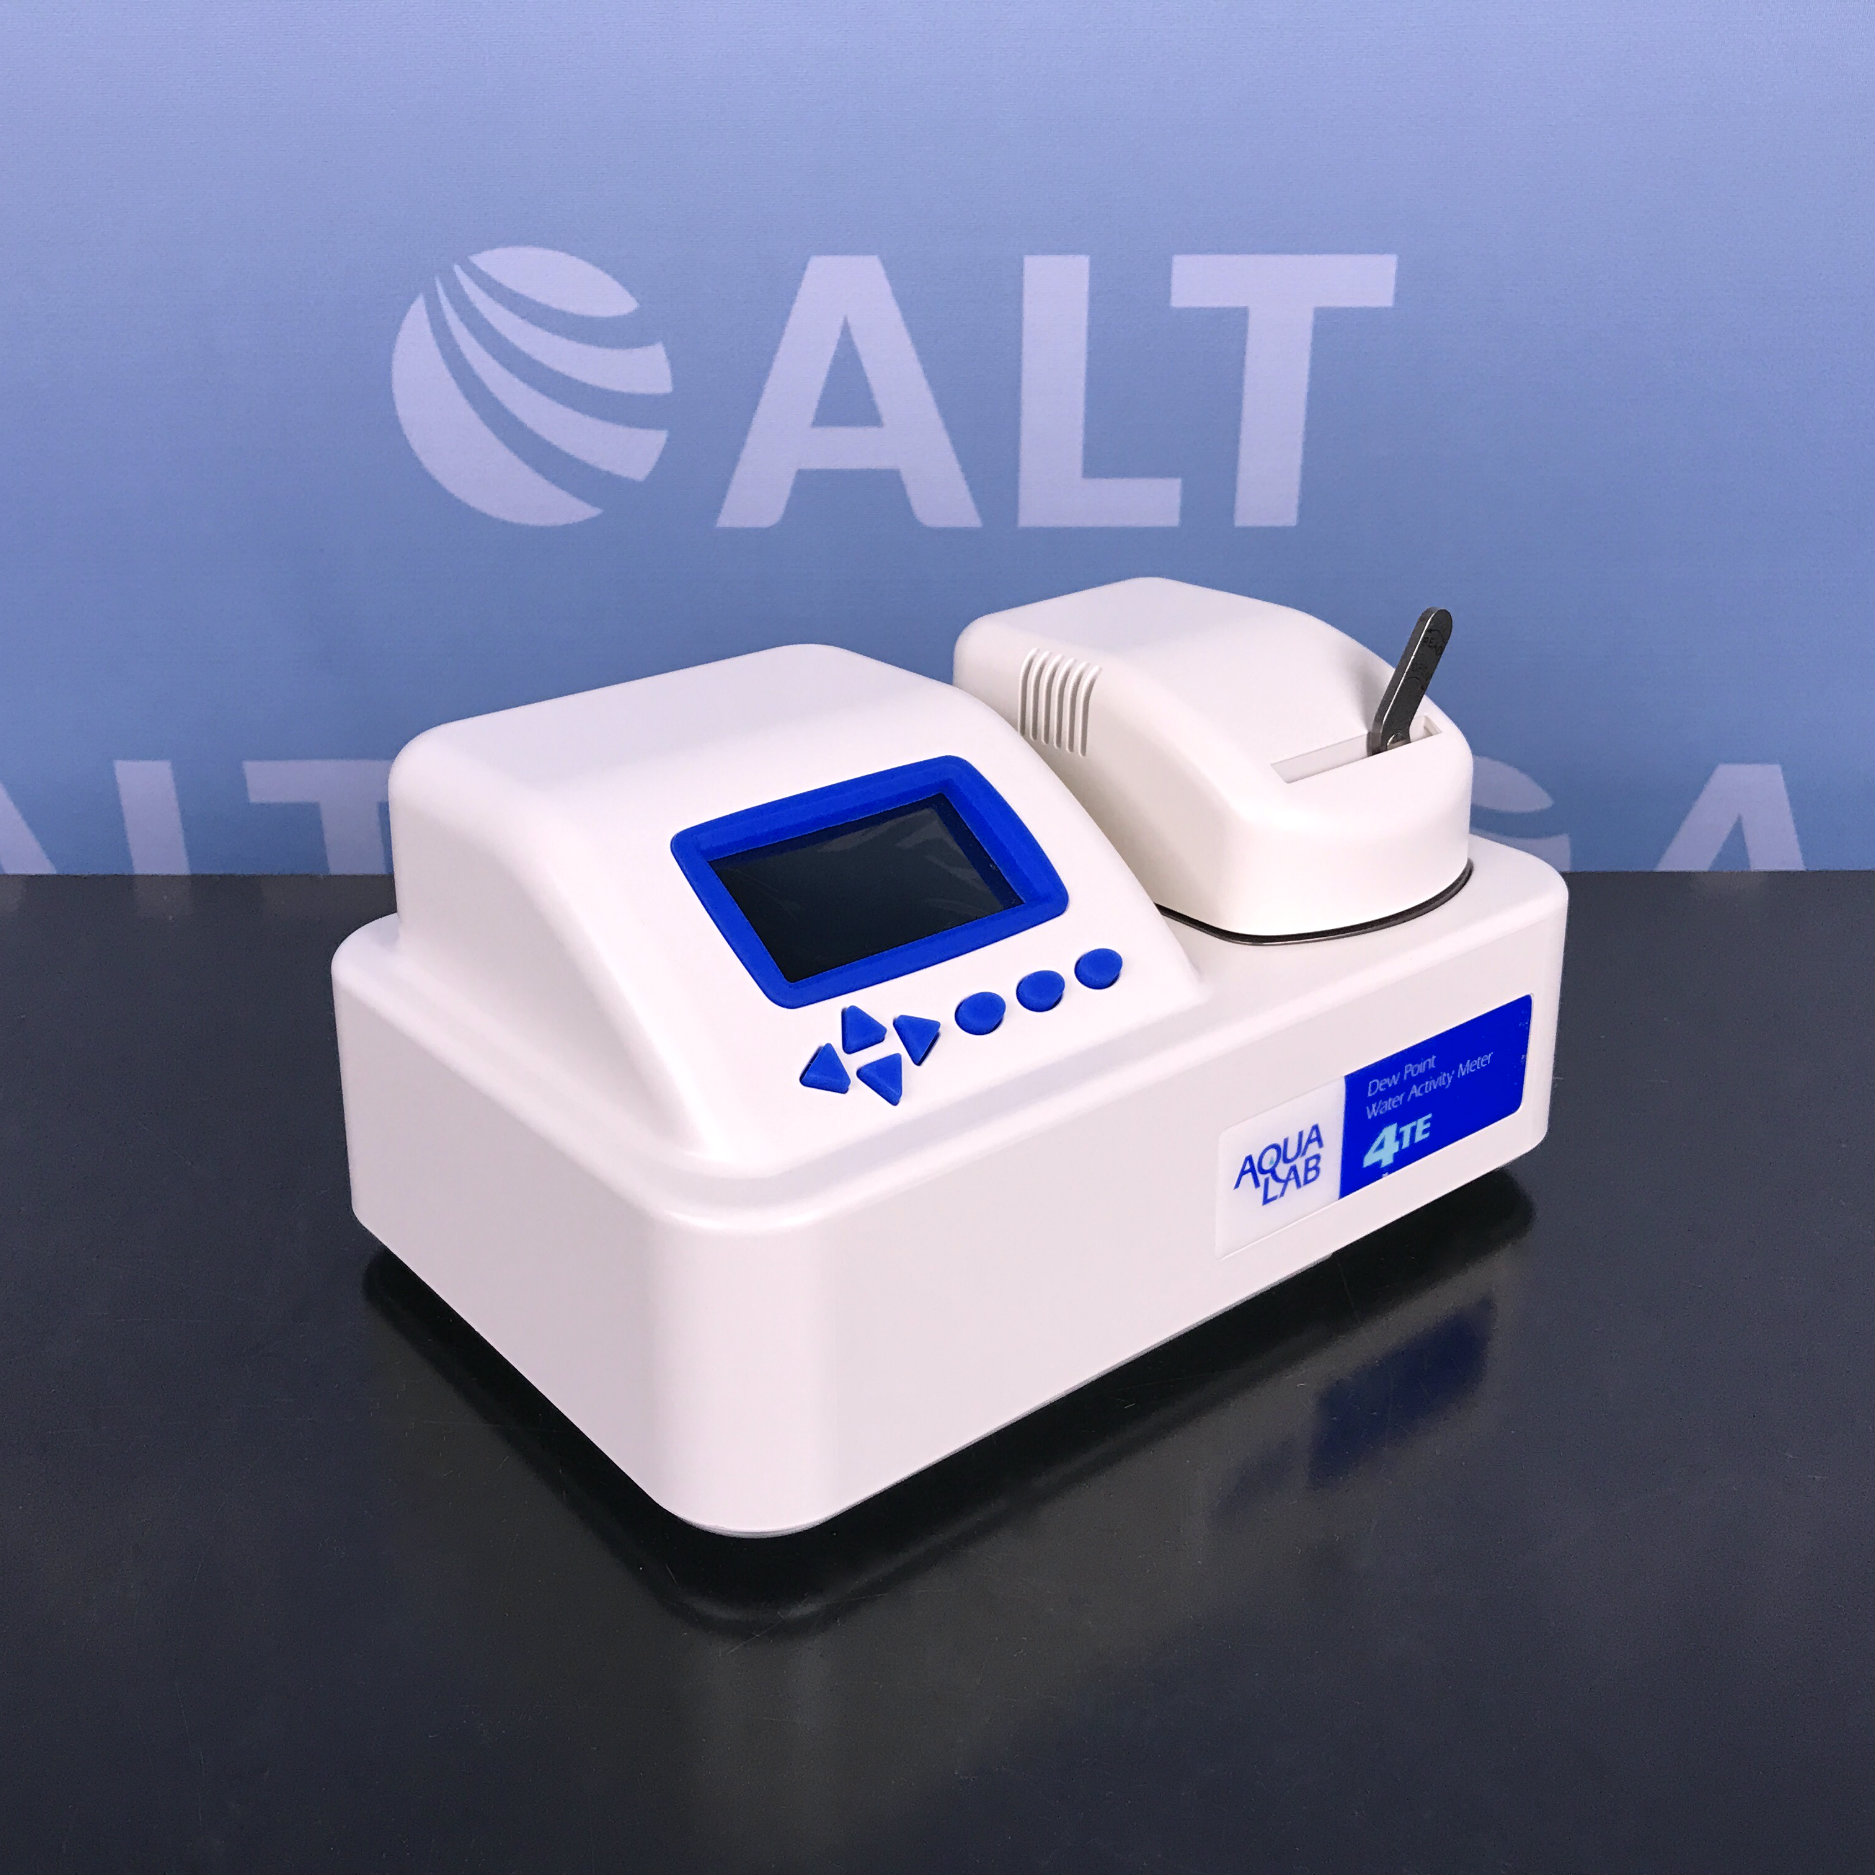 Refurbished Aqualab 4te Dew Point Water Activity Meter